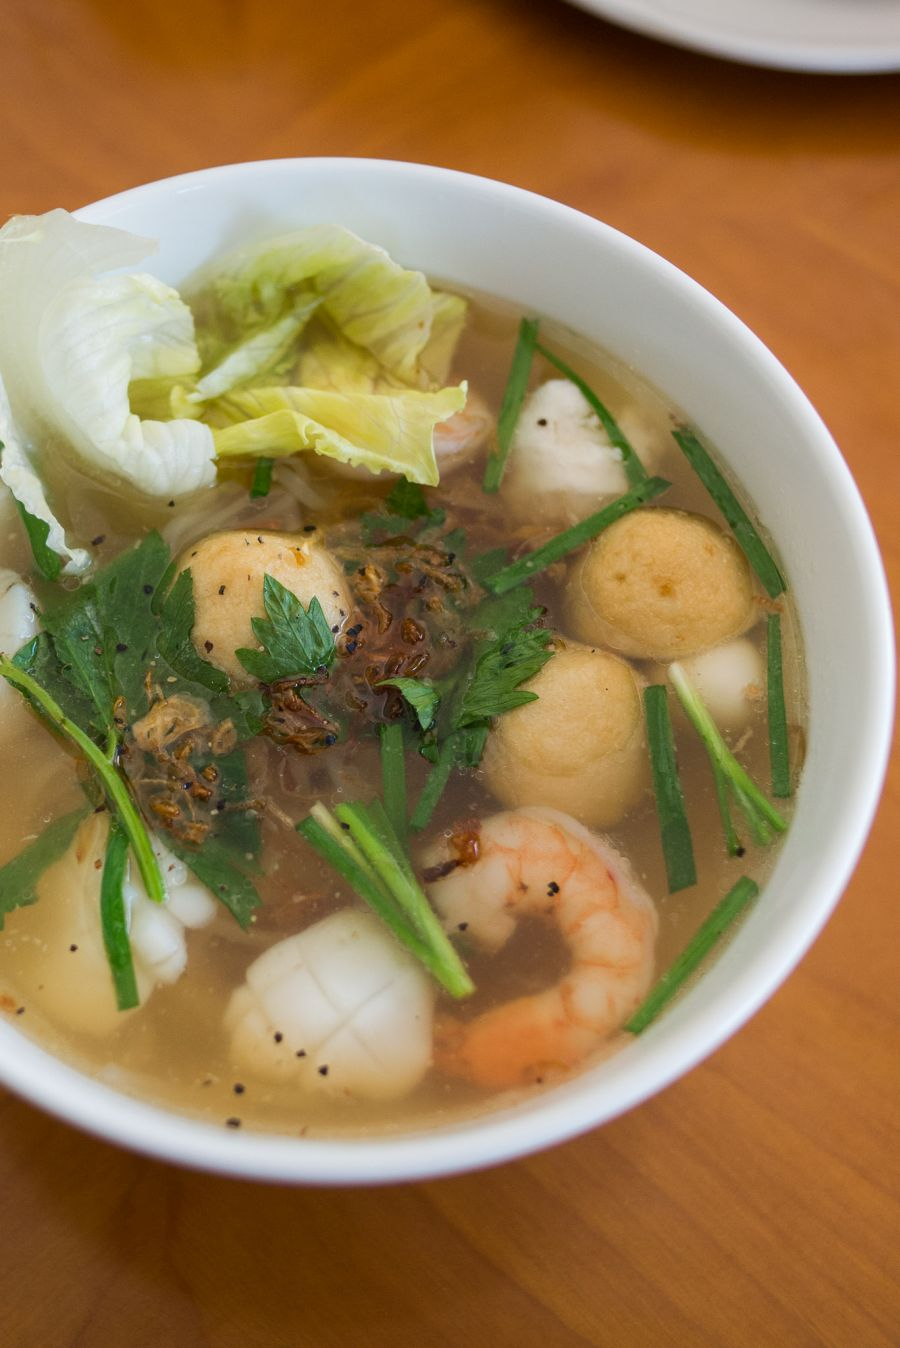 Hu Tieu Do Bien Nuoc - rice noodle soup with seafood, bean sprouts, chives, celery, onion (coriander was missing - AU$12)